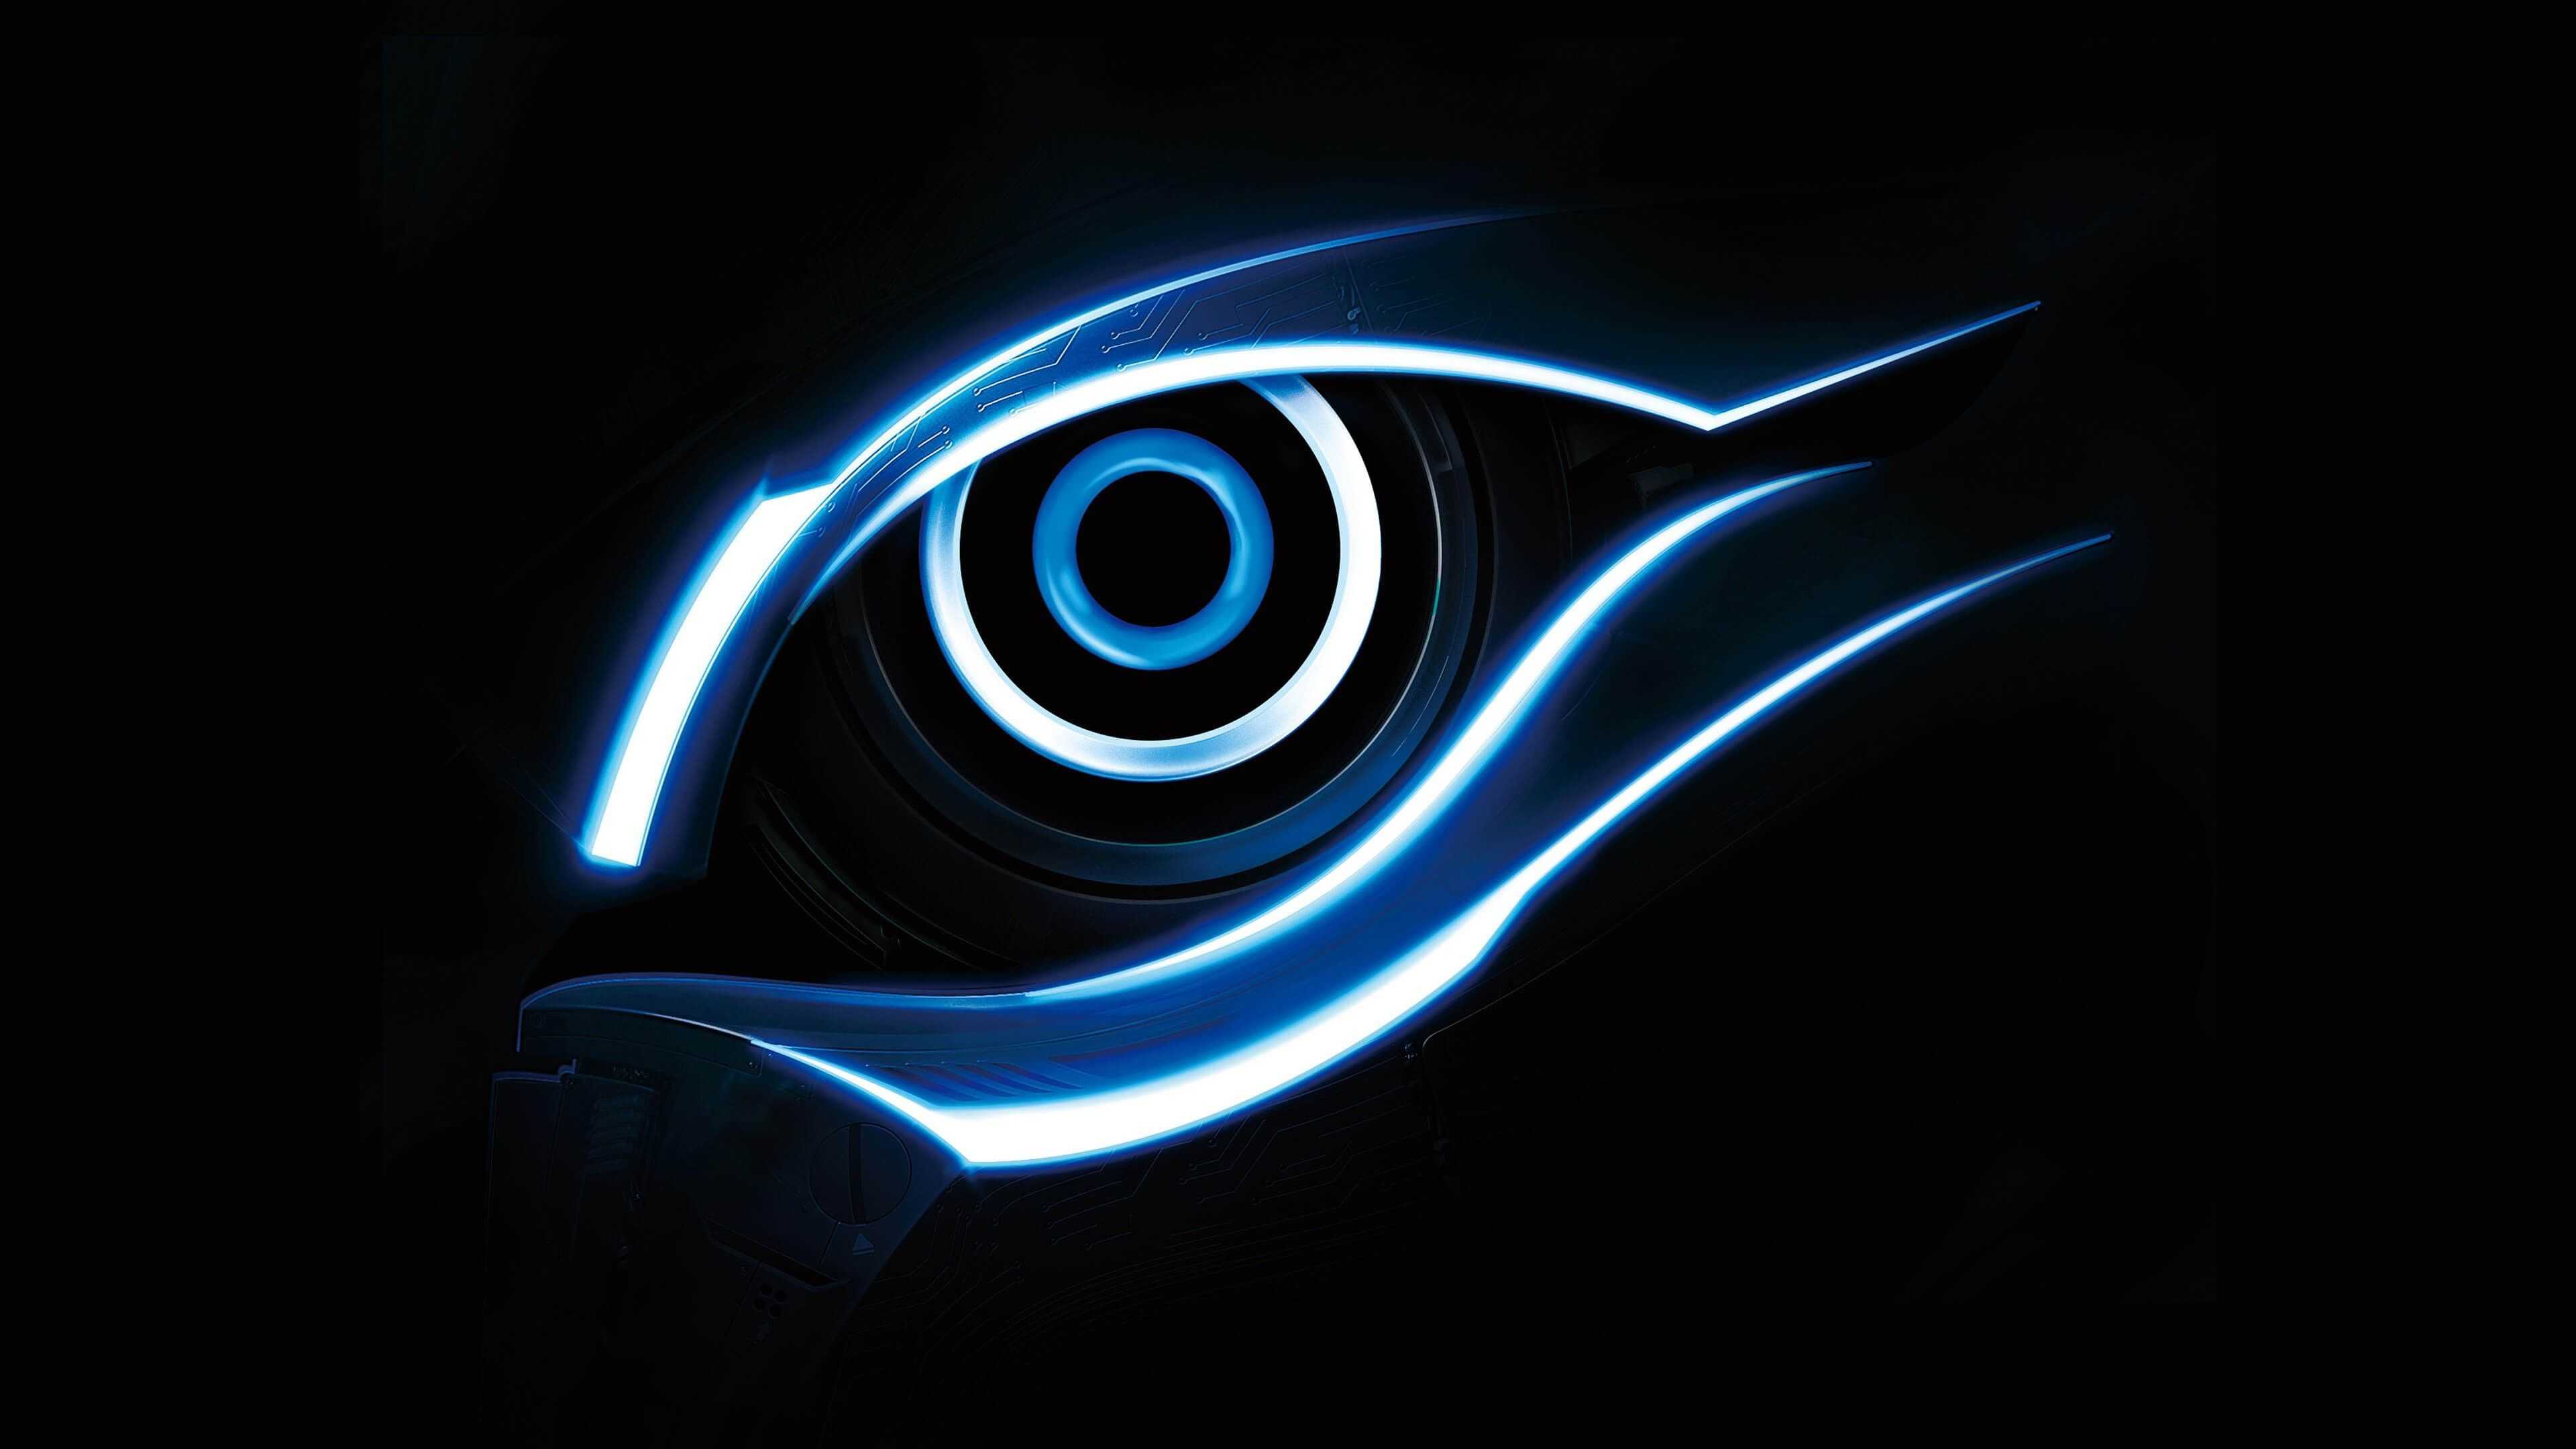 3840x2160 Ultra Hd 4k Blue Gigabyte Eye Logo 4k Wallpaper Download Wallpaper Dark Wallpaper Computer Wallpaper Desktop Wallpapers Technology Wallpaper